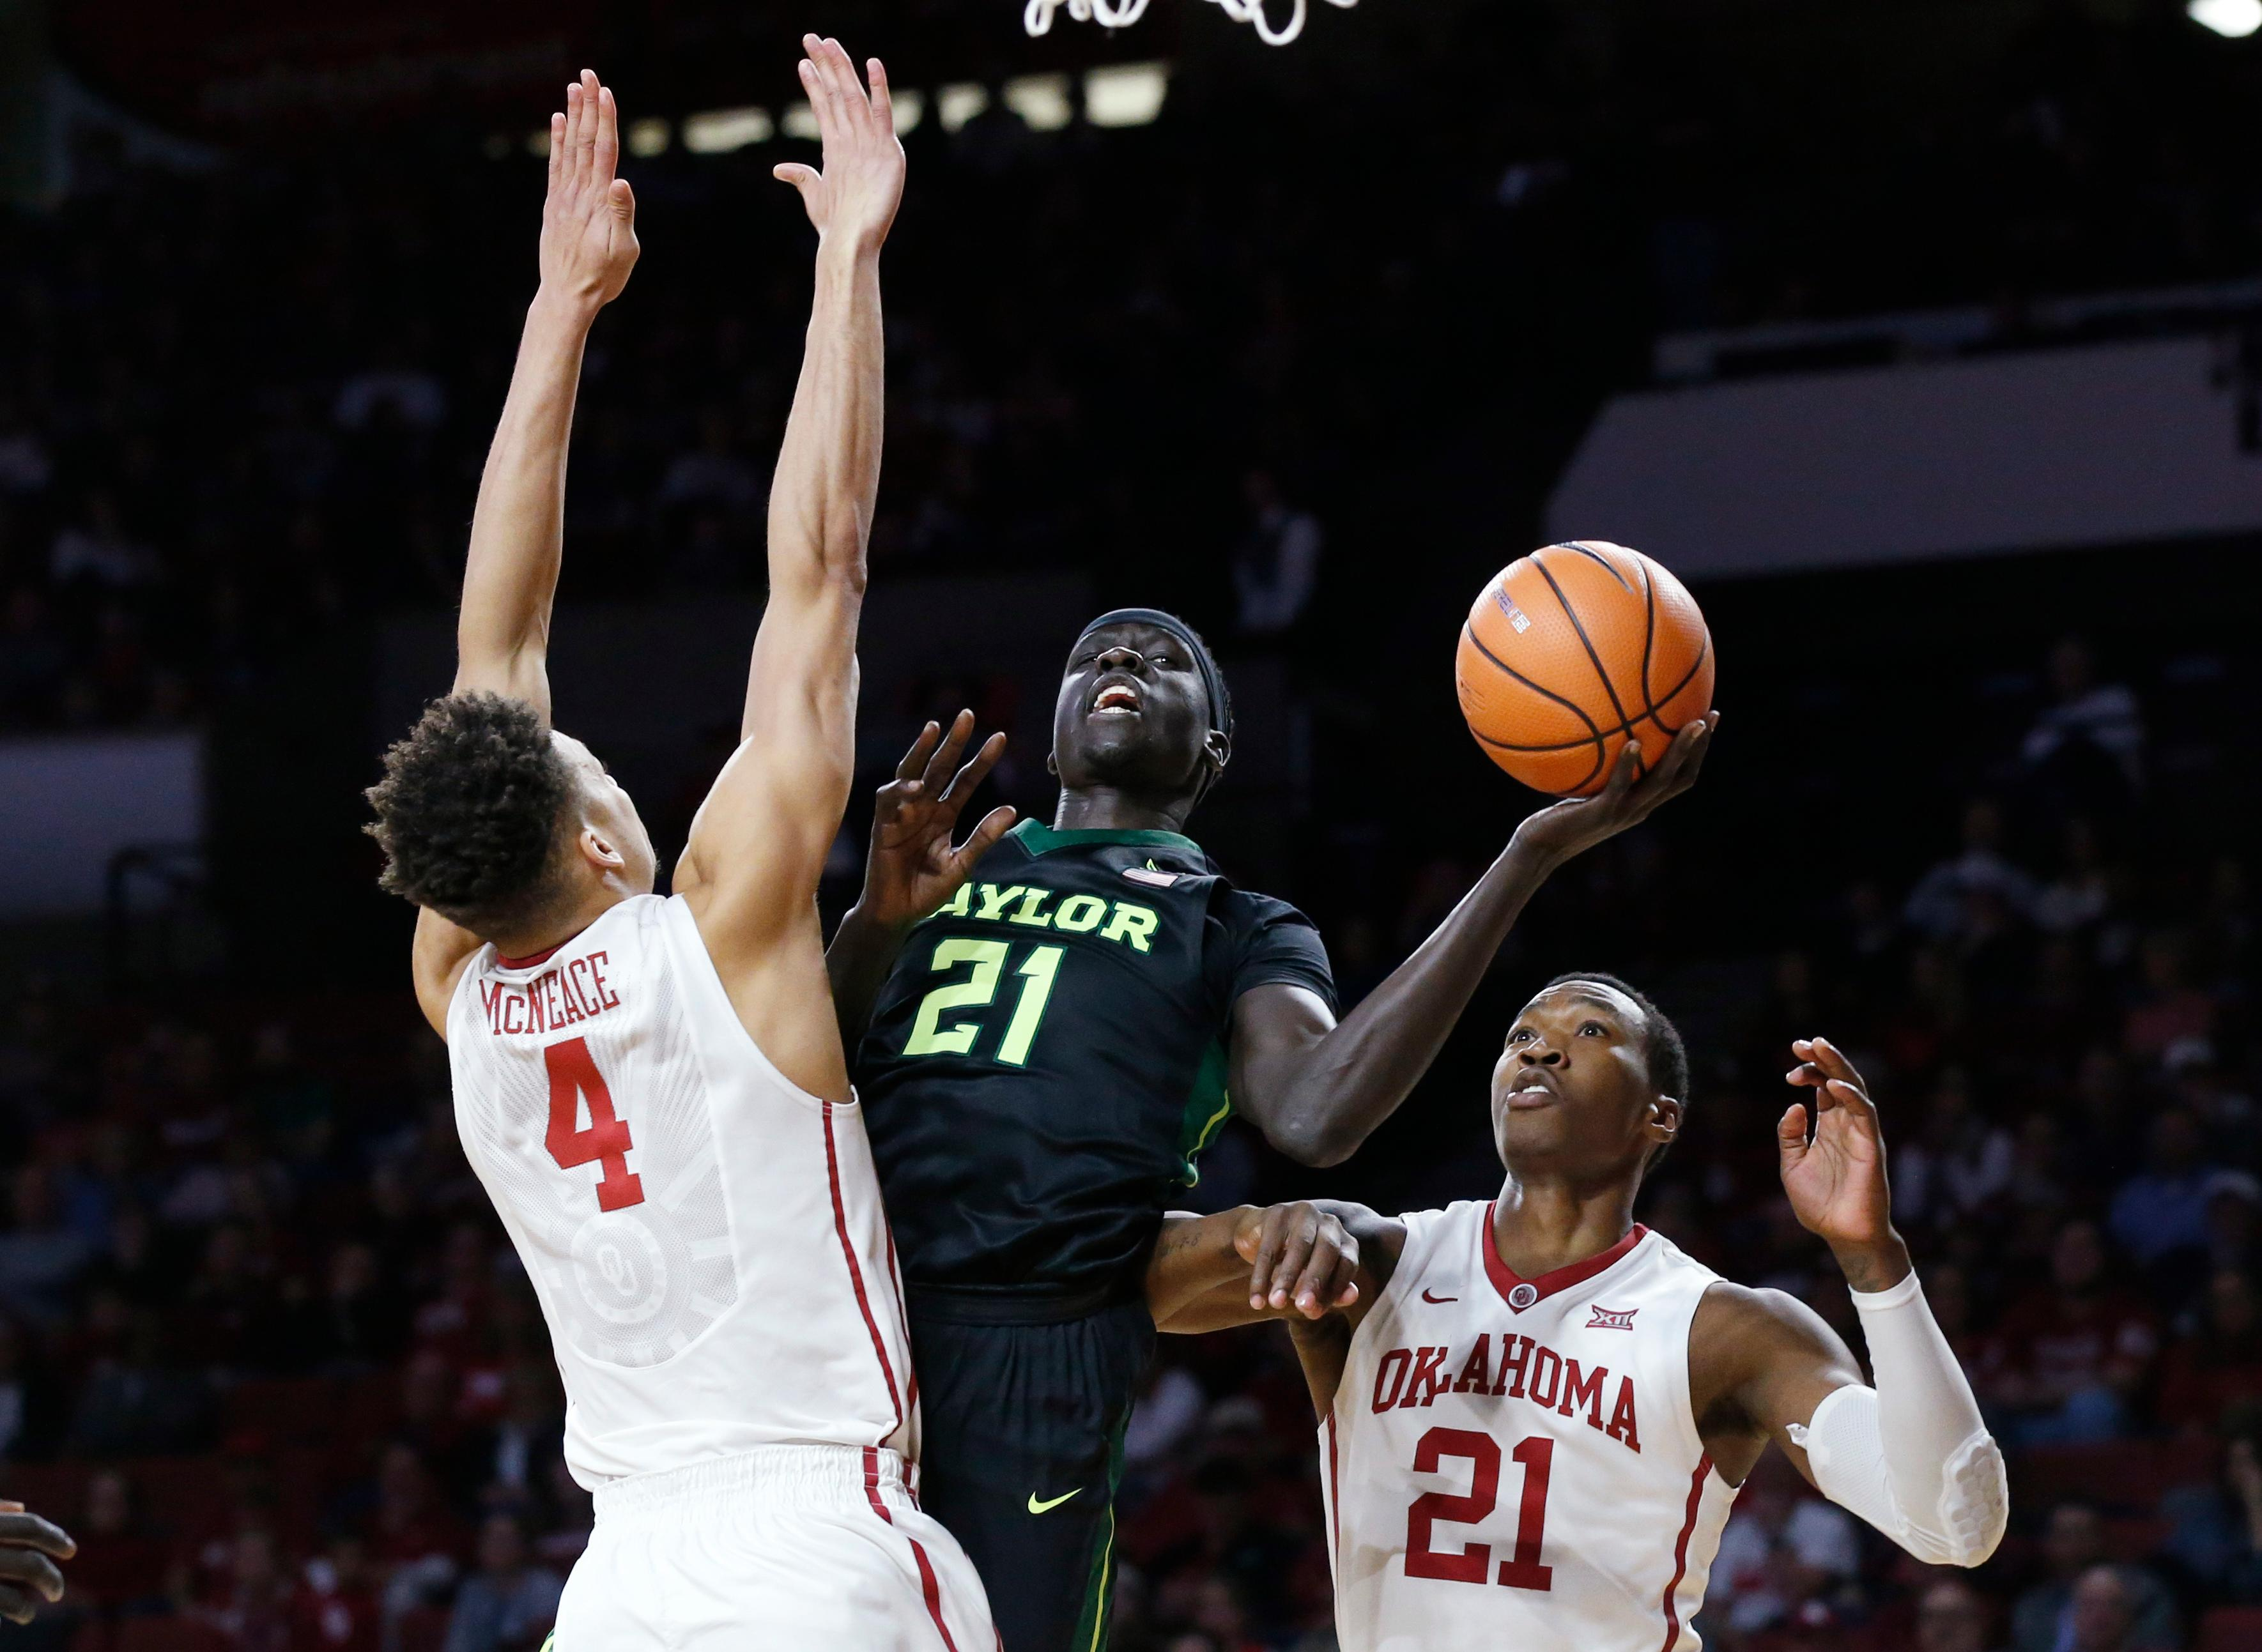 Baylor forward Nuni Omot (21) drives to the basket between Oklahoma center Jamuni McNeace (4) and forward Kristian Doolittle (21) during the first half of an NCAA college basketball game in Norman, Okla., Tuesday, Jan. 30, 2018. (AP Photo/Sue Ogrocki)